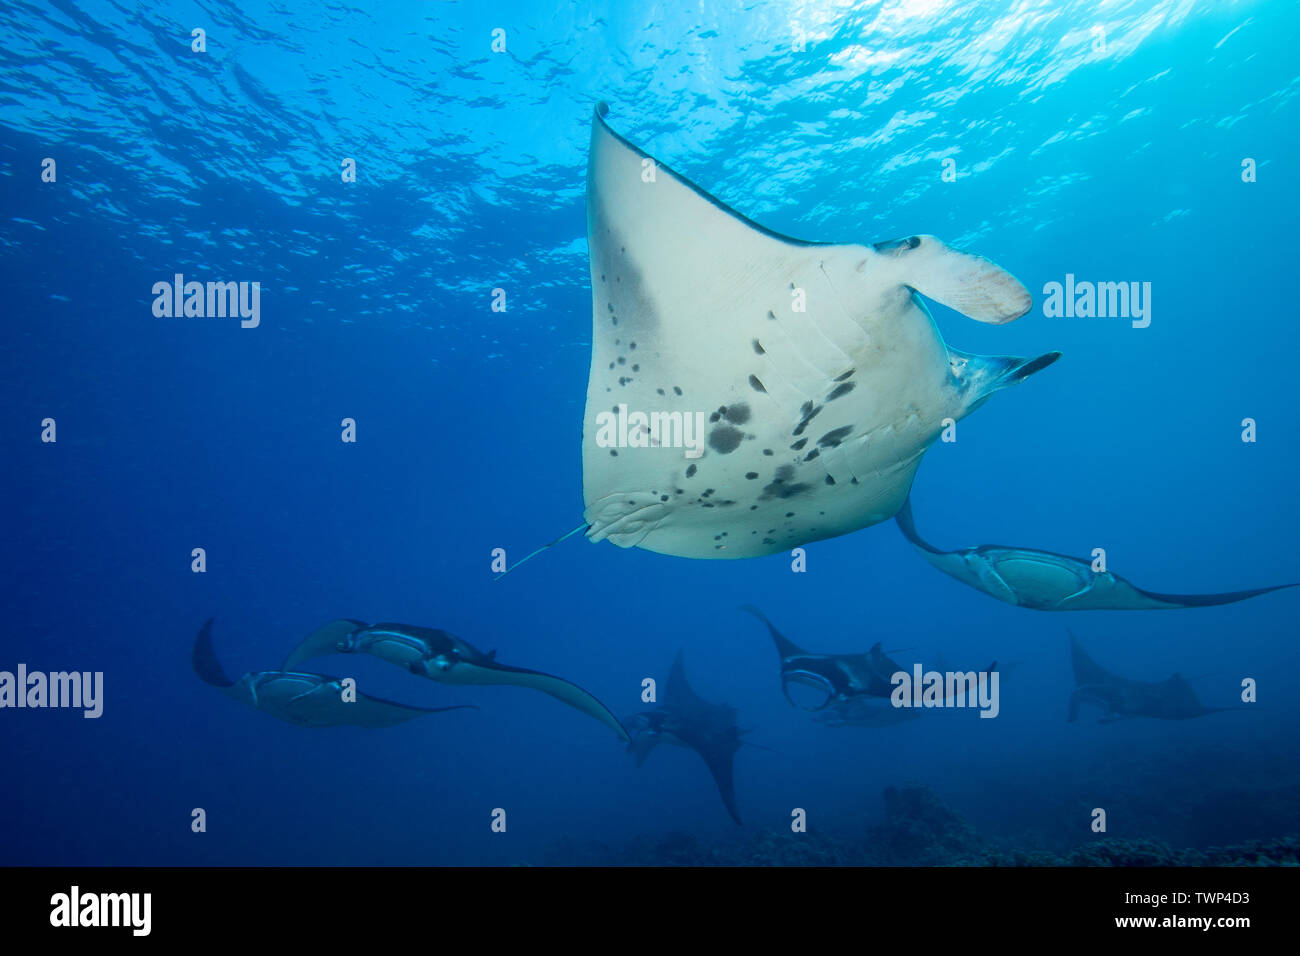 Reef manta rays, Manta alfredi, cruise over the shallows off Ukumehame in a mating train, Maui, Hawaii.  The individual in the foreground is a male. Stock Photo